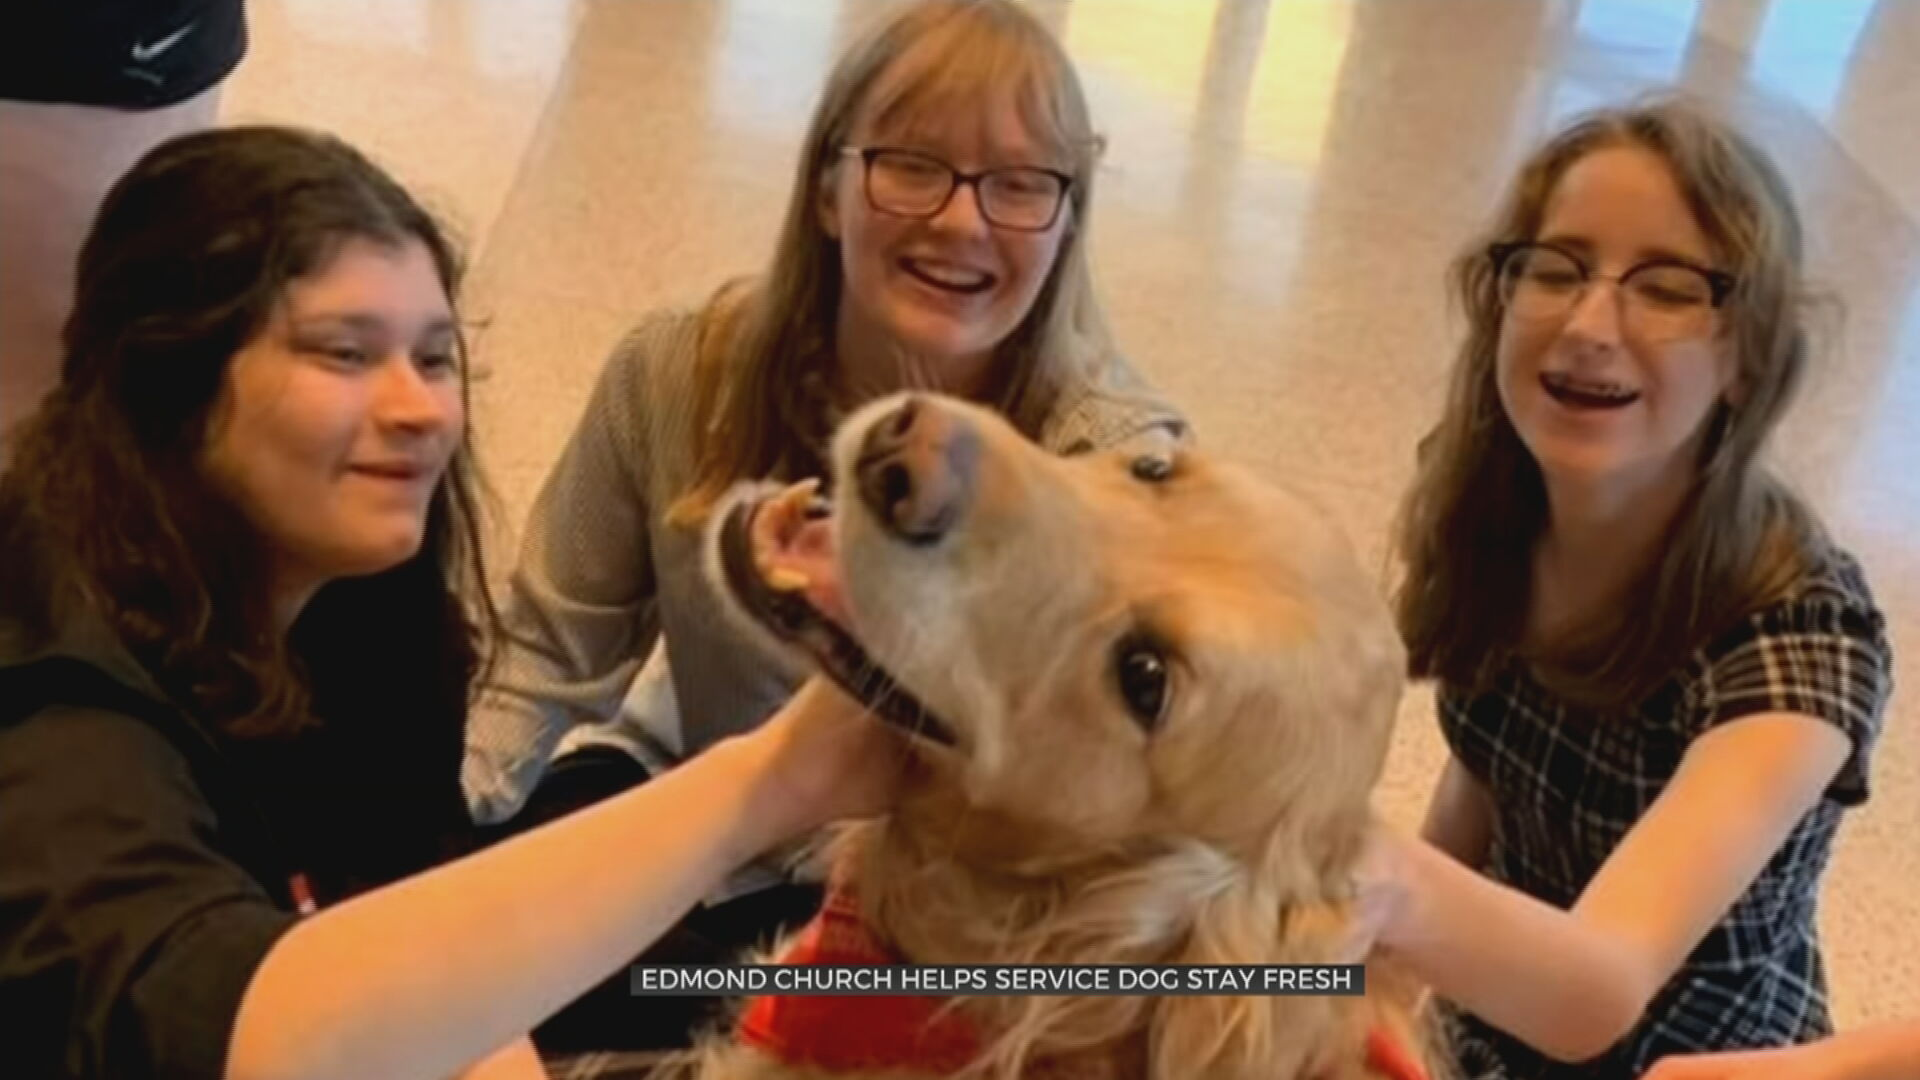 Church Helps Service Dog Who Has Been Out Of Service During COVID-19